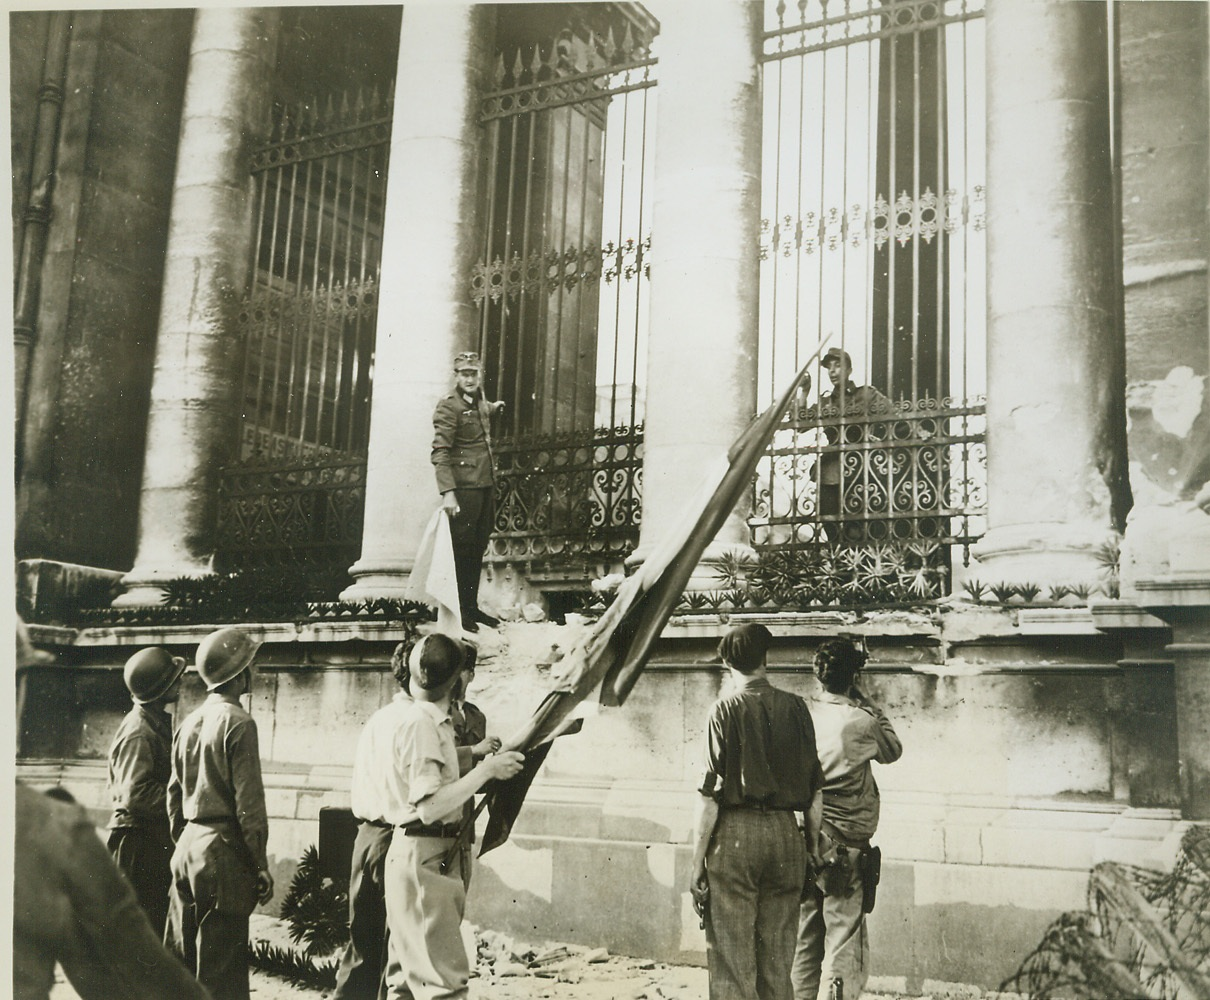 France Regains Its Chamber of Deputies, 8/30/1944. France—With a Nazi garrison barricaded behind him, a German officer hangs onto rail of the Chamber of Deputies in Paris while negotiating for surrender to the French partisans. He holds the white flag of truce while a French soldier in the foreground has the Tricolor ready to hoist as a signal of victory when surrender is complete.  Credit: ACME;